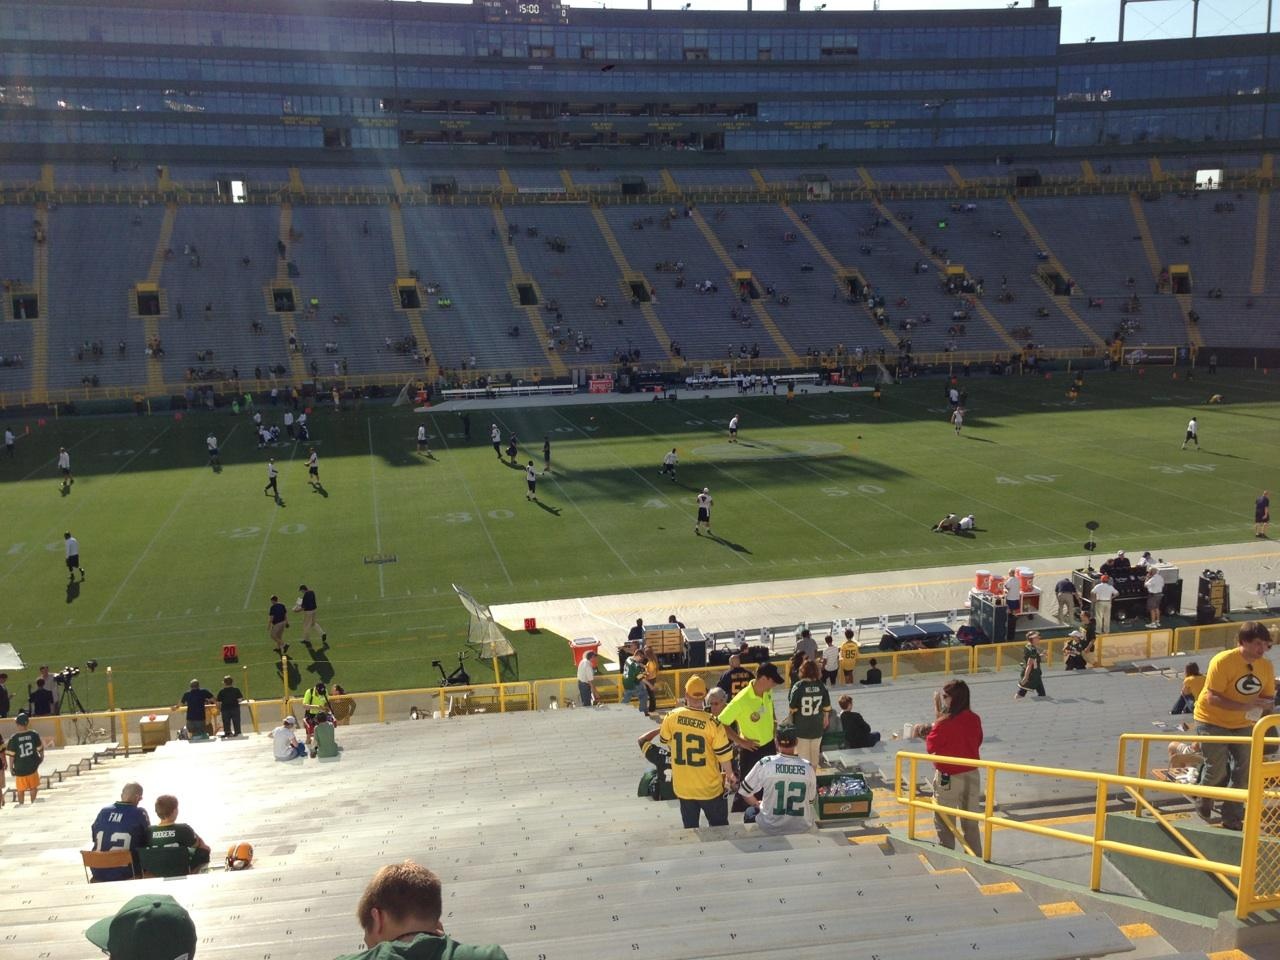 Seating in Section 123 at Lambeau Field